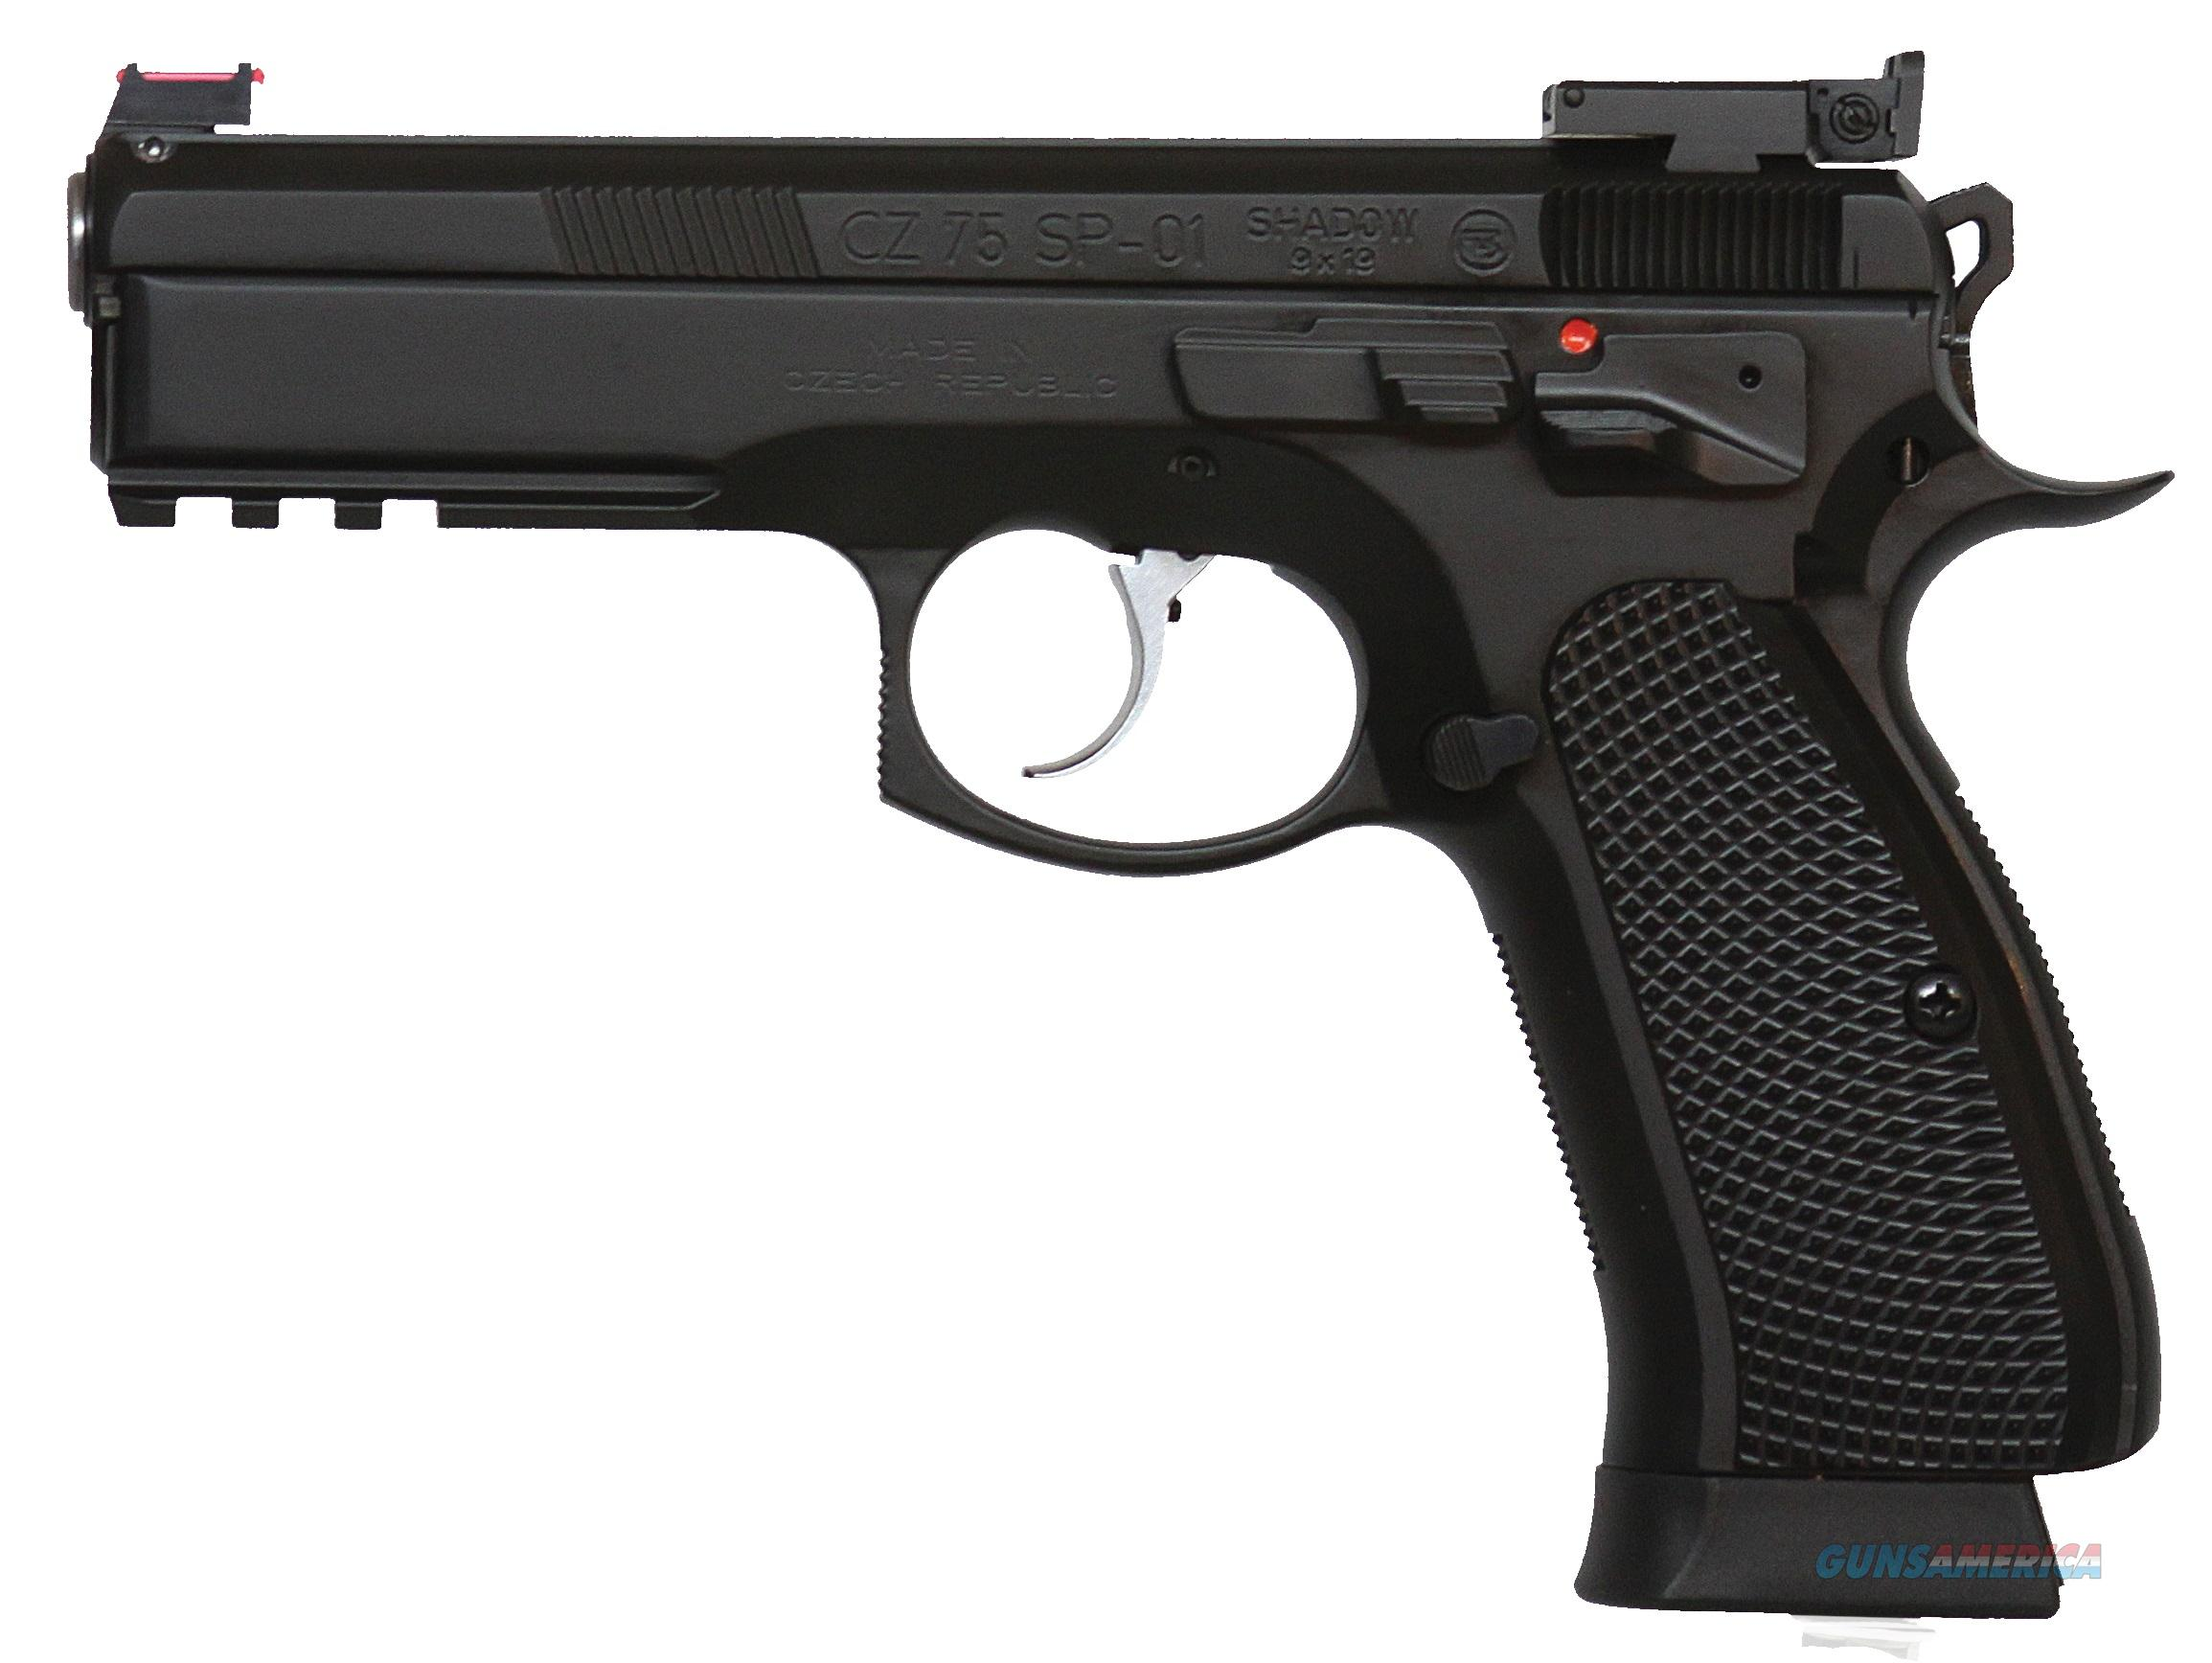 CZ-USA CZ 75 SP-01 Shadow Target II 9mm CZ Custom Competition Pistol 91760  Guns > Pistols > CZ Pistols